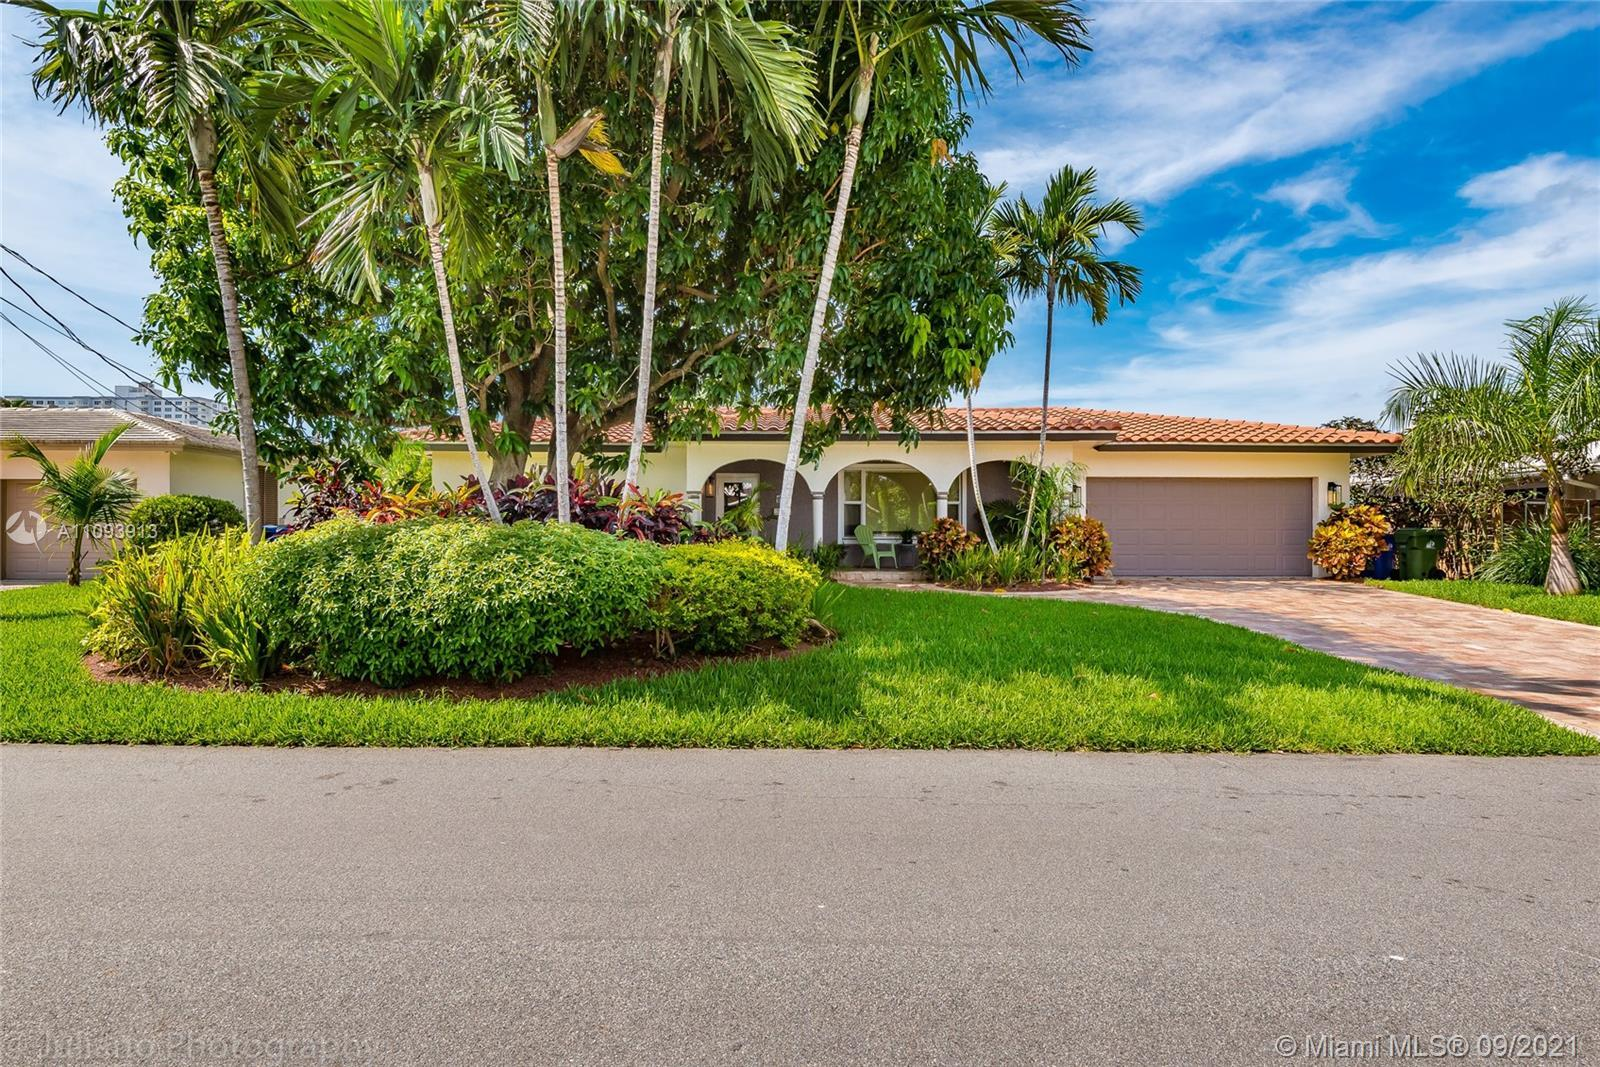 Welcome to the prestigious community of Bermuda Rivera. Home has an open floor plan with 3 bedrooms,